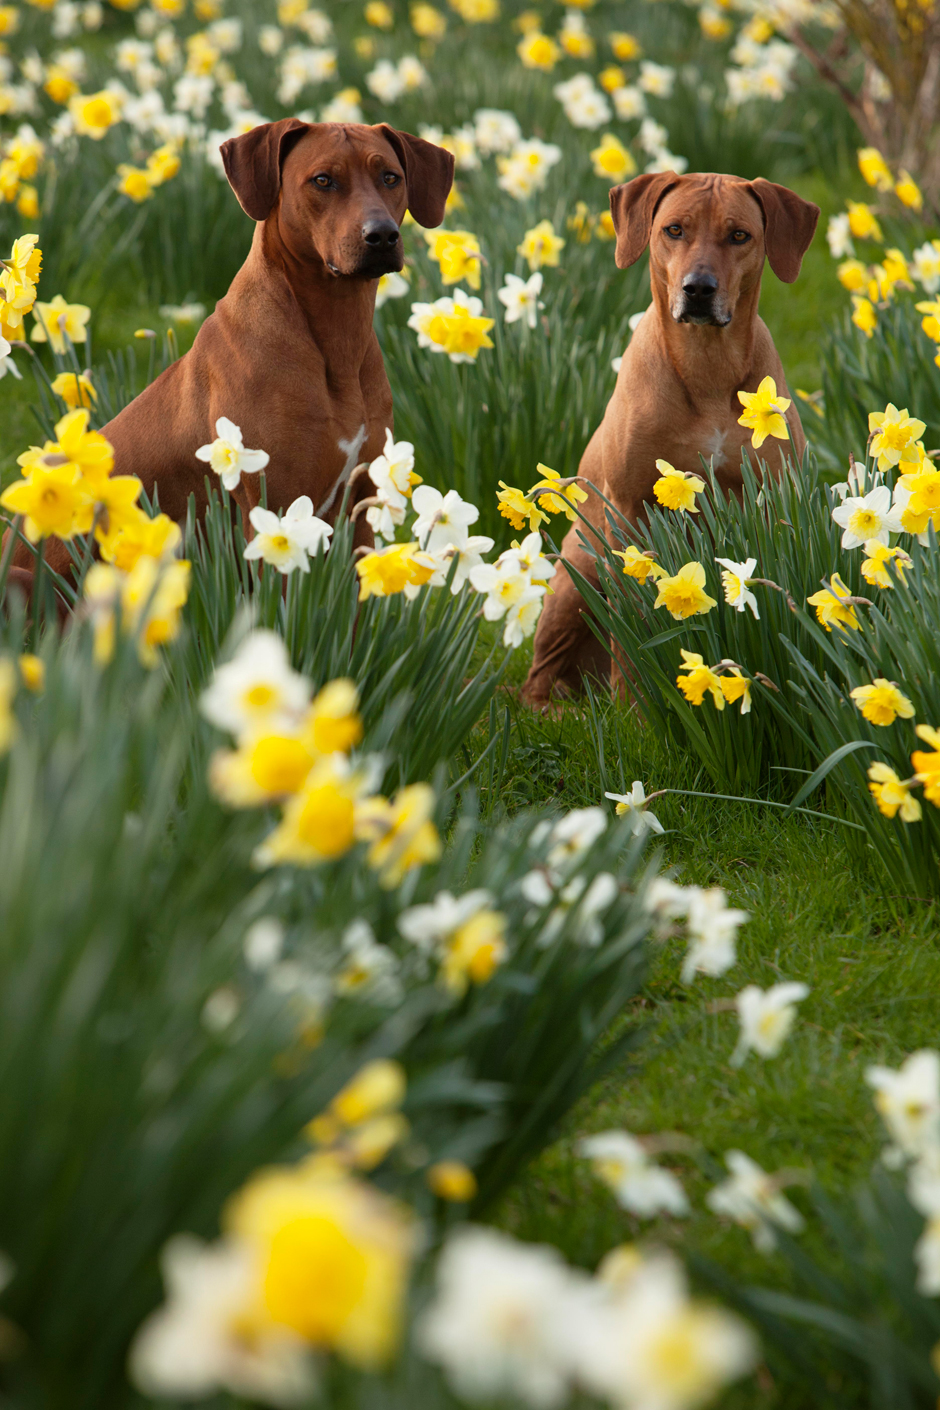 MG 9540 Spring has Sprung as they say...so heres some Rhodesian Ridgebacks & Daffodils